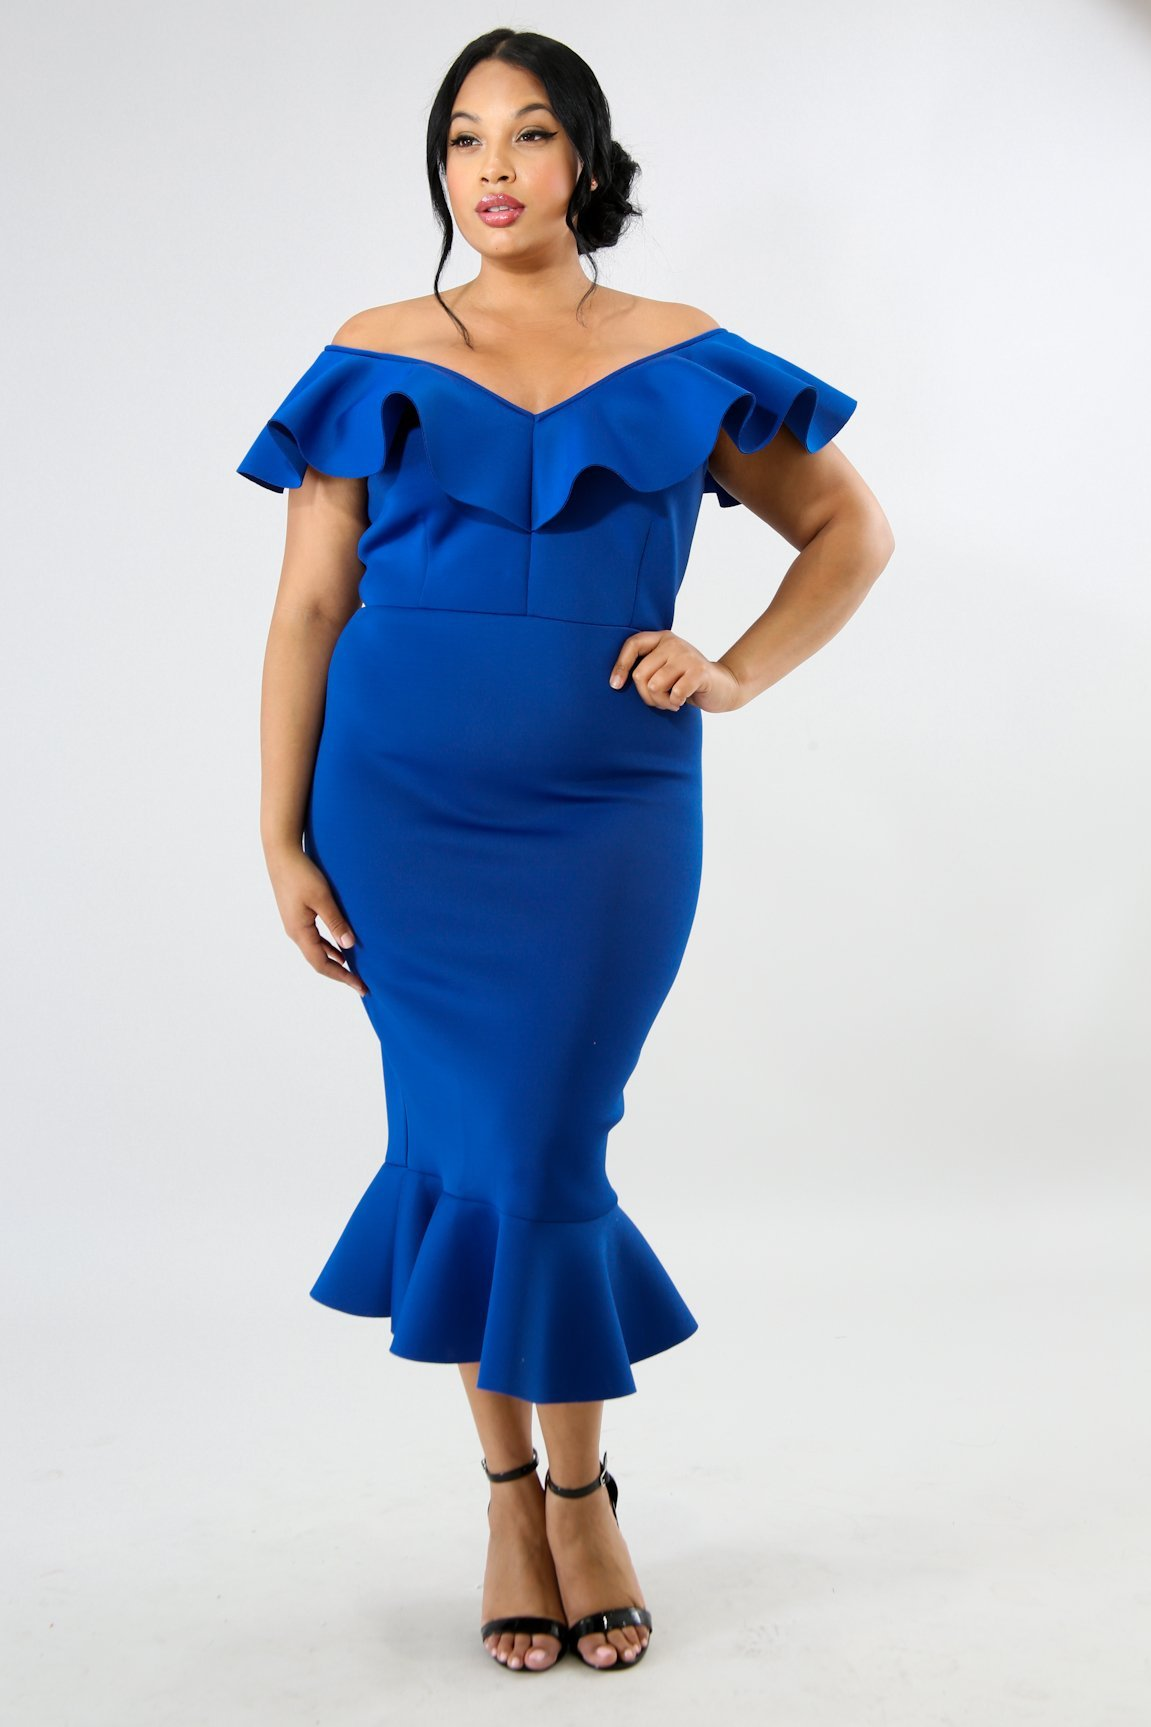 OFF SHOULDER RUFFLE SCUBA MAXI STRETCH V-NECKLINE PLUS SIZE MAXI  DRESS-ROYAL BLUE sold by Fashion XOXO Shop